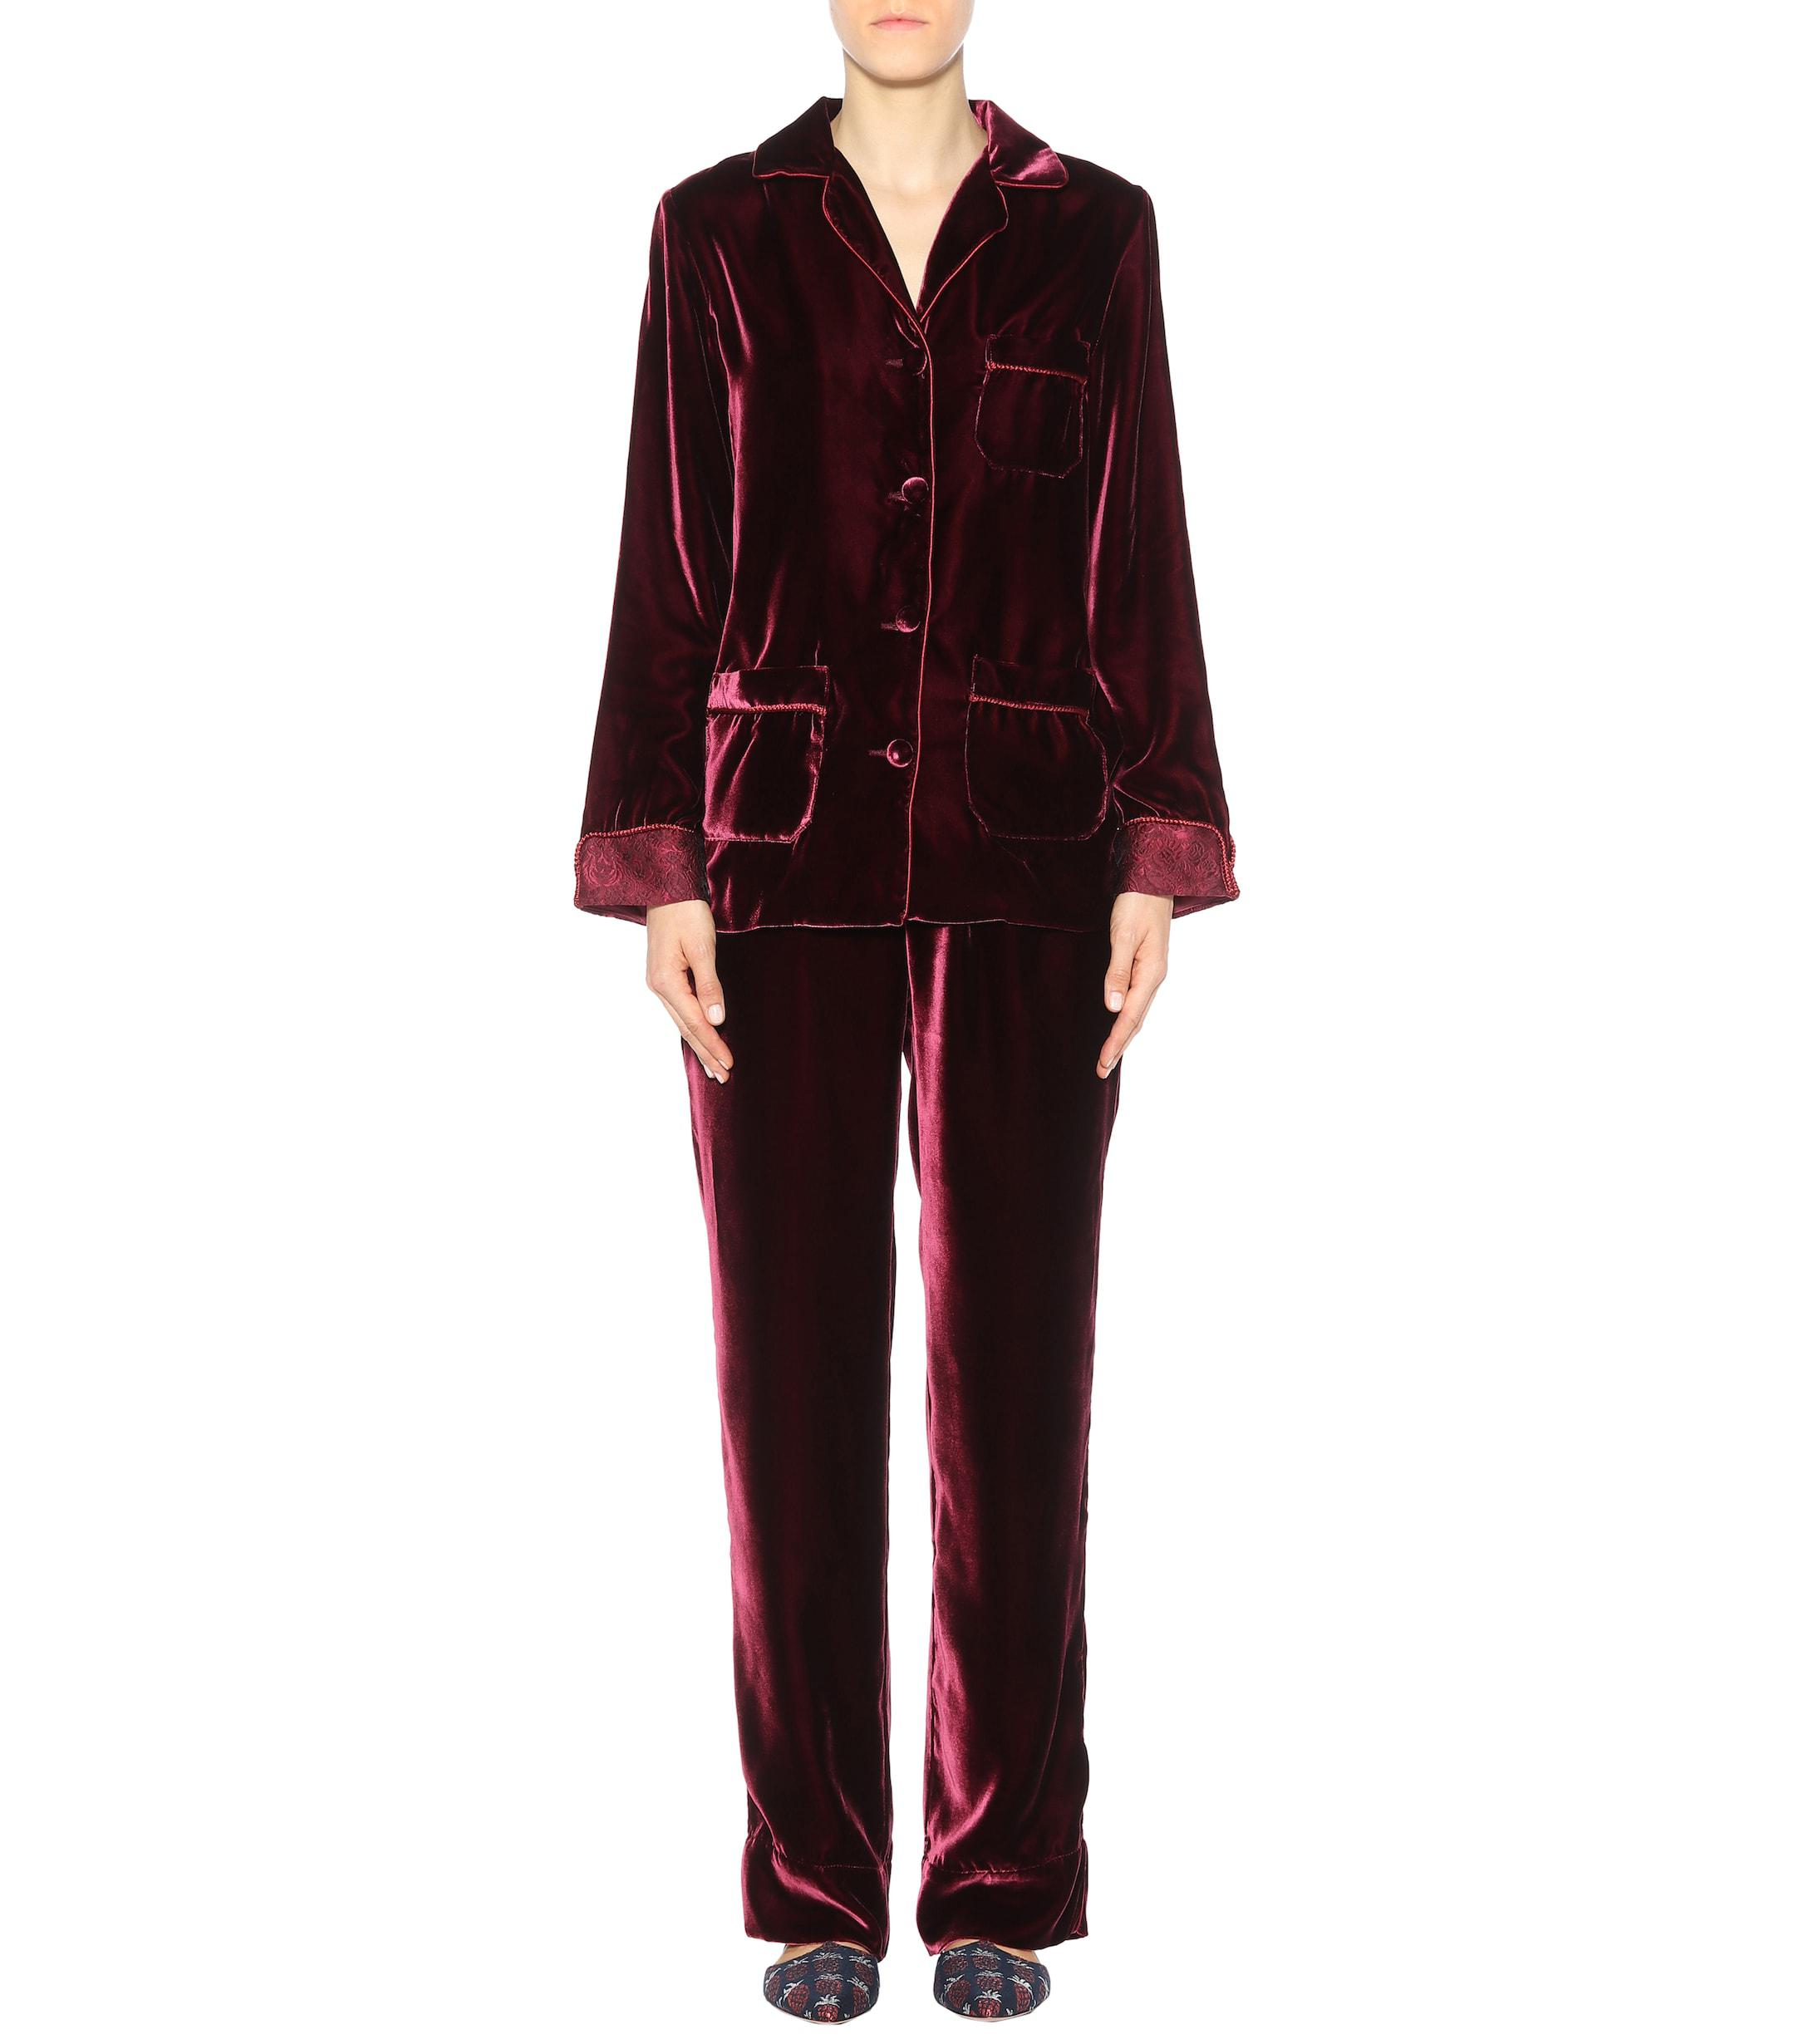 1aedb1431 Lyst - F.R.S For Restless Sleepers Rea Velvet Shirt in Red